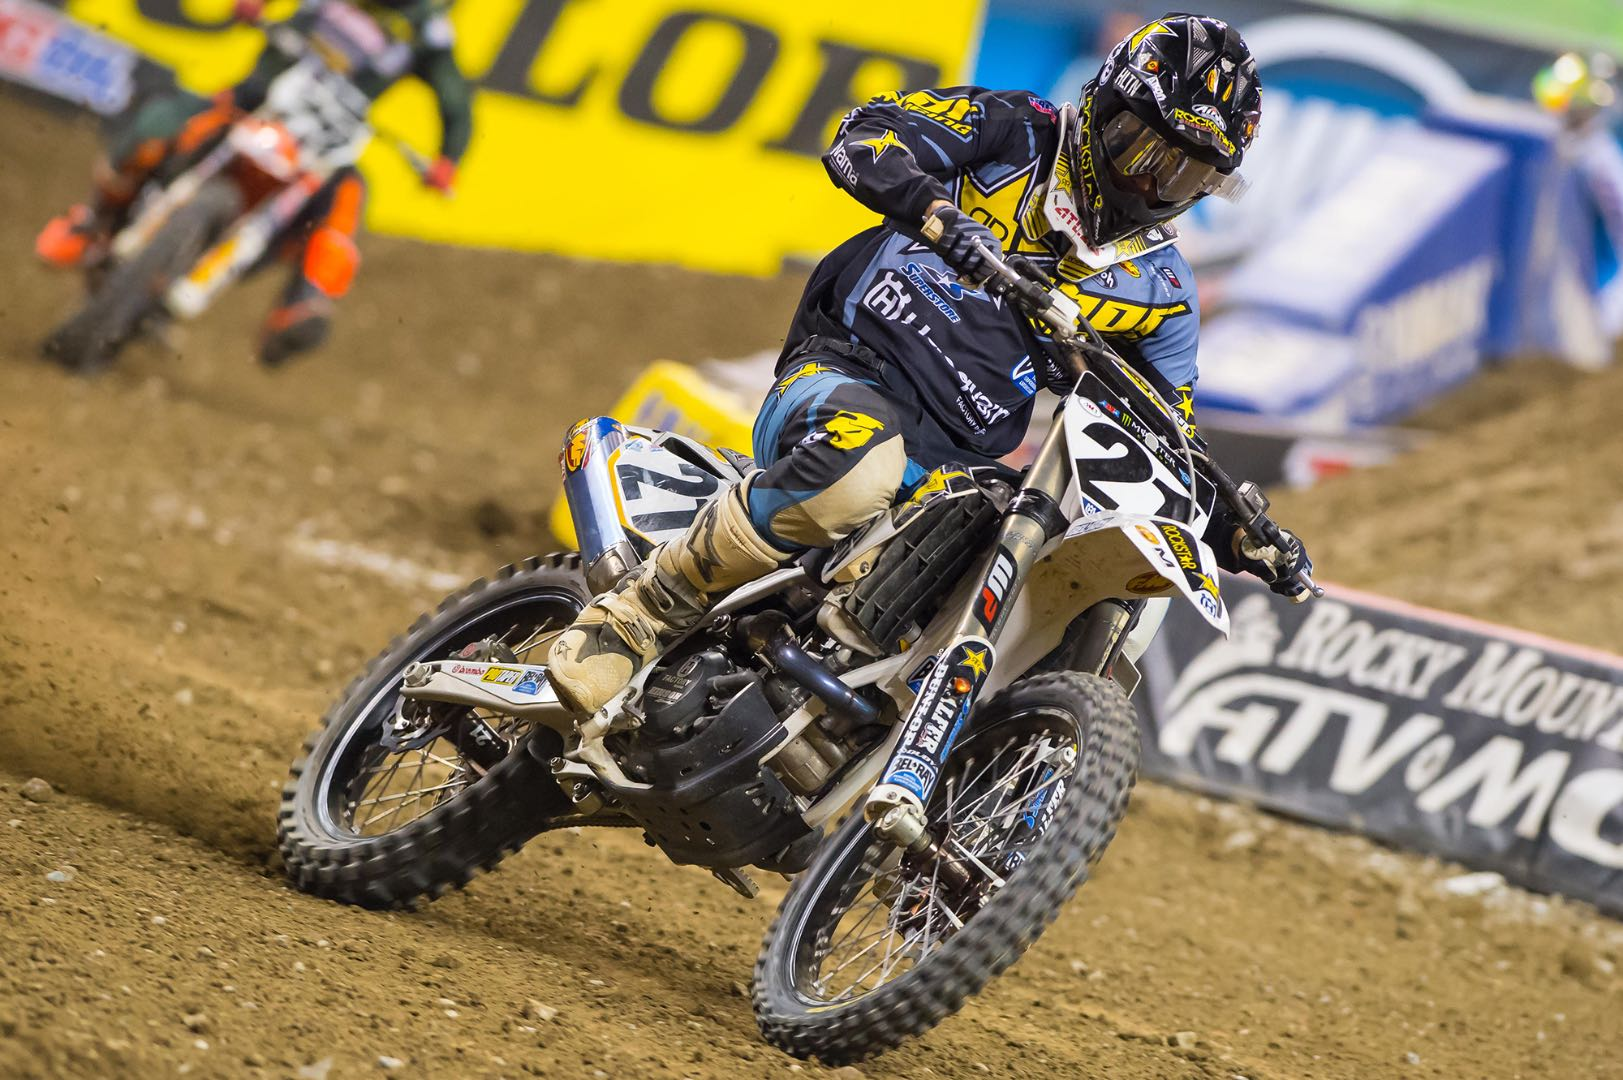 2017 New Jersey Supercross Preview: Husqvarna's Jason Anderson